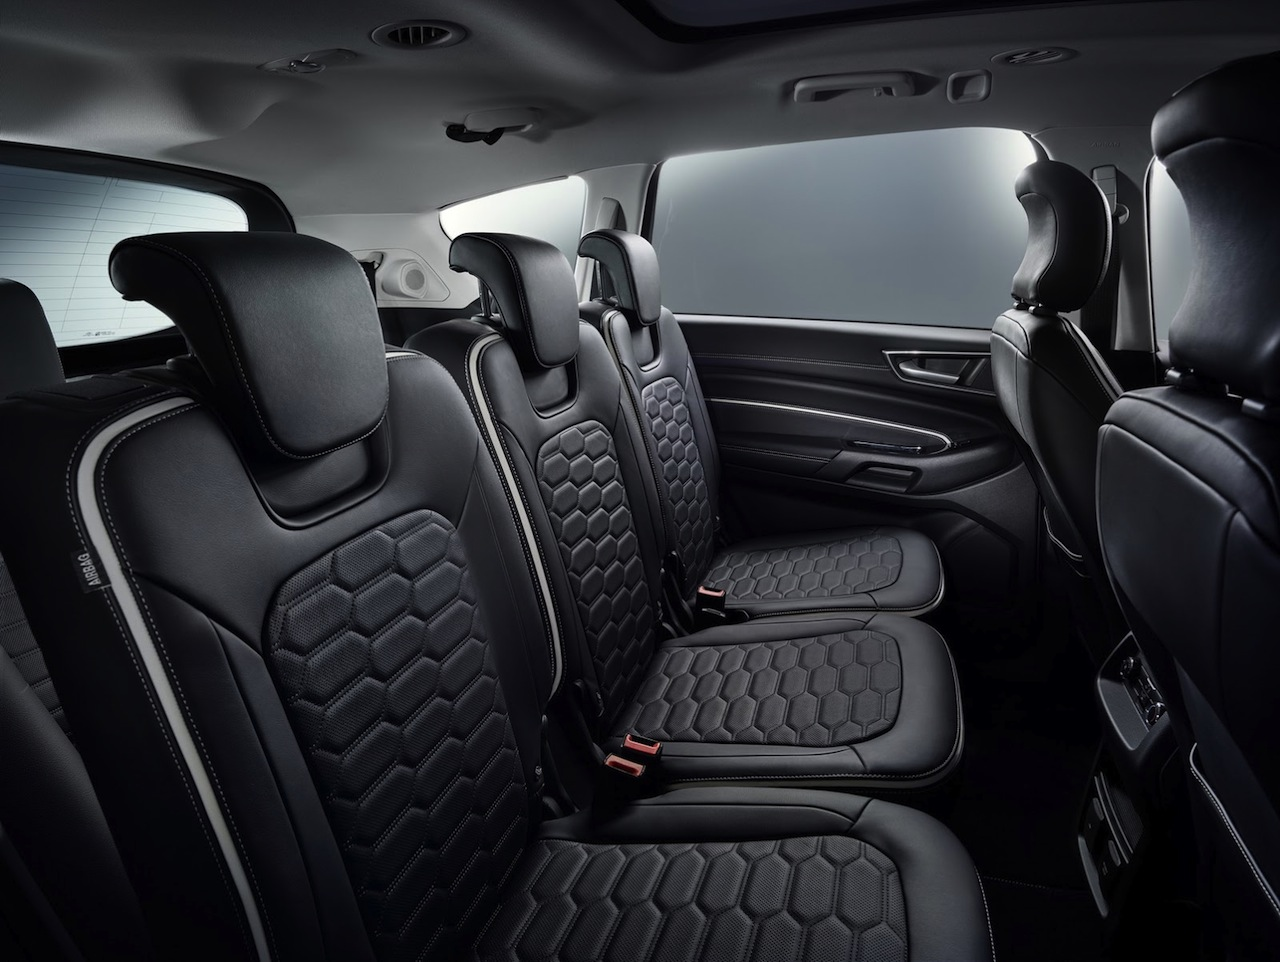 Ford s max vignale m ximo cuidado en los detalles for Ford s max photos interieur